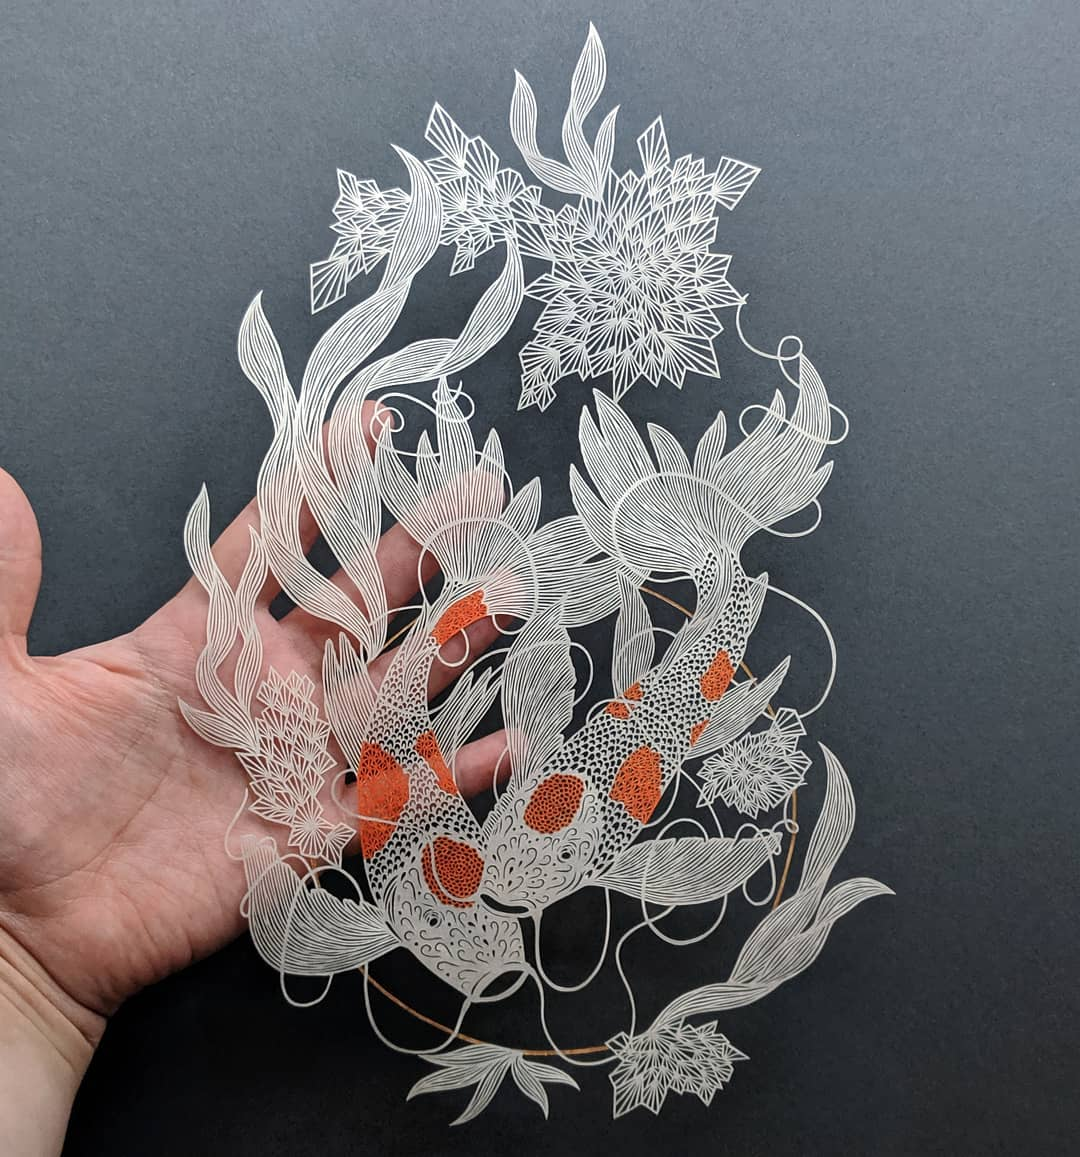 64 Brilliant Paper Artists to Follow on Instagram